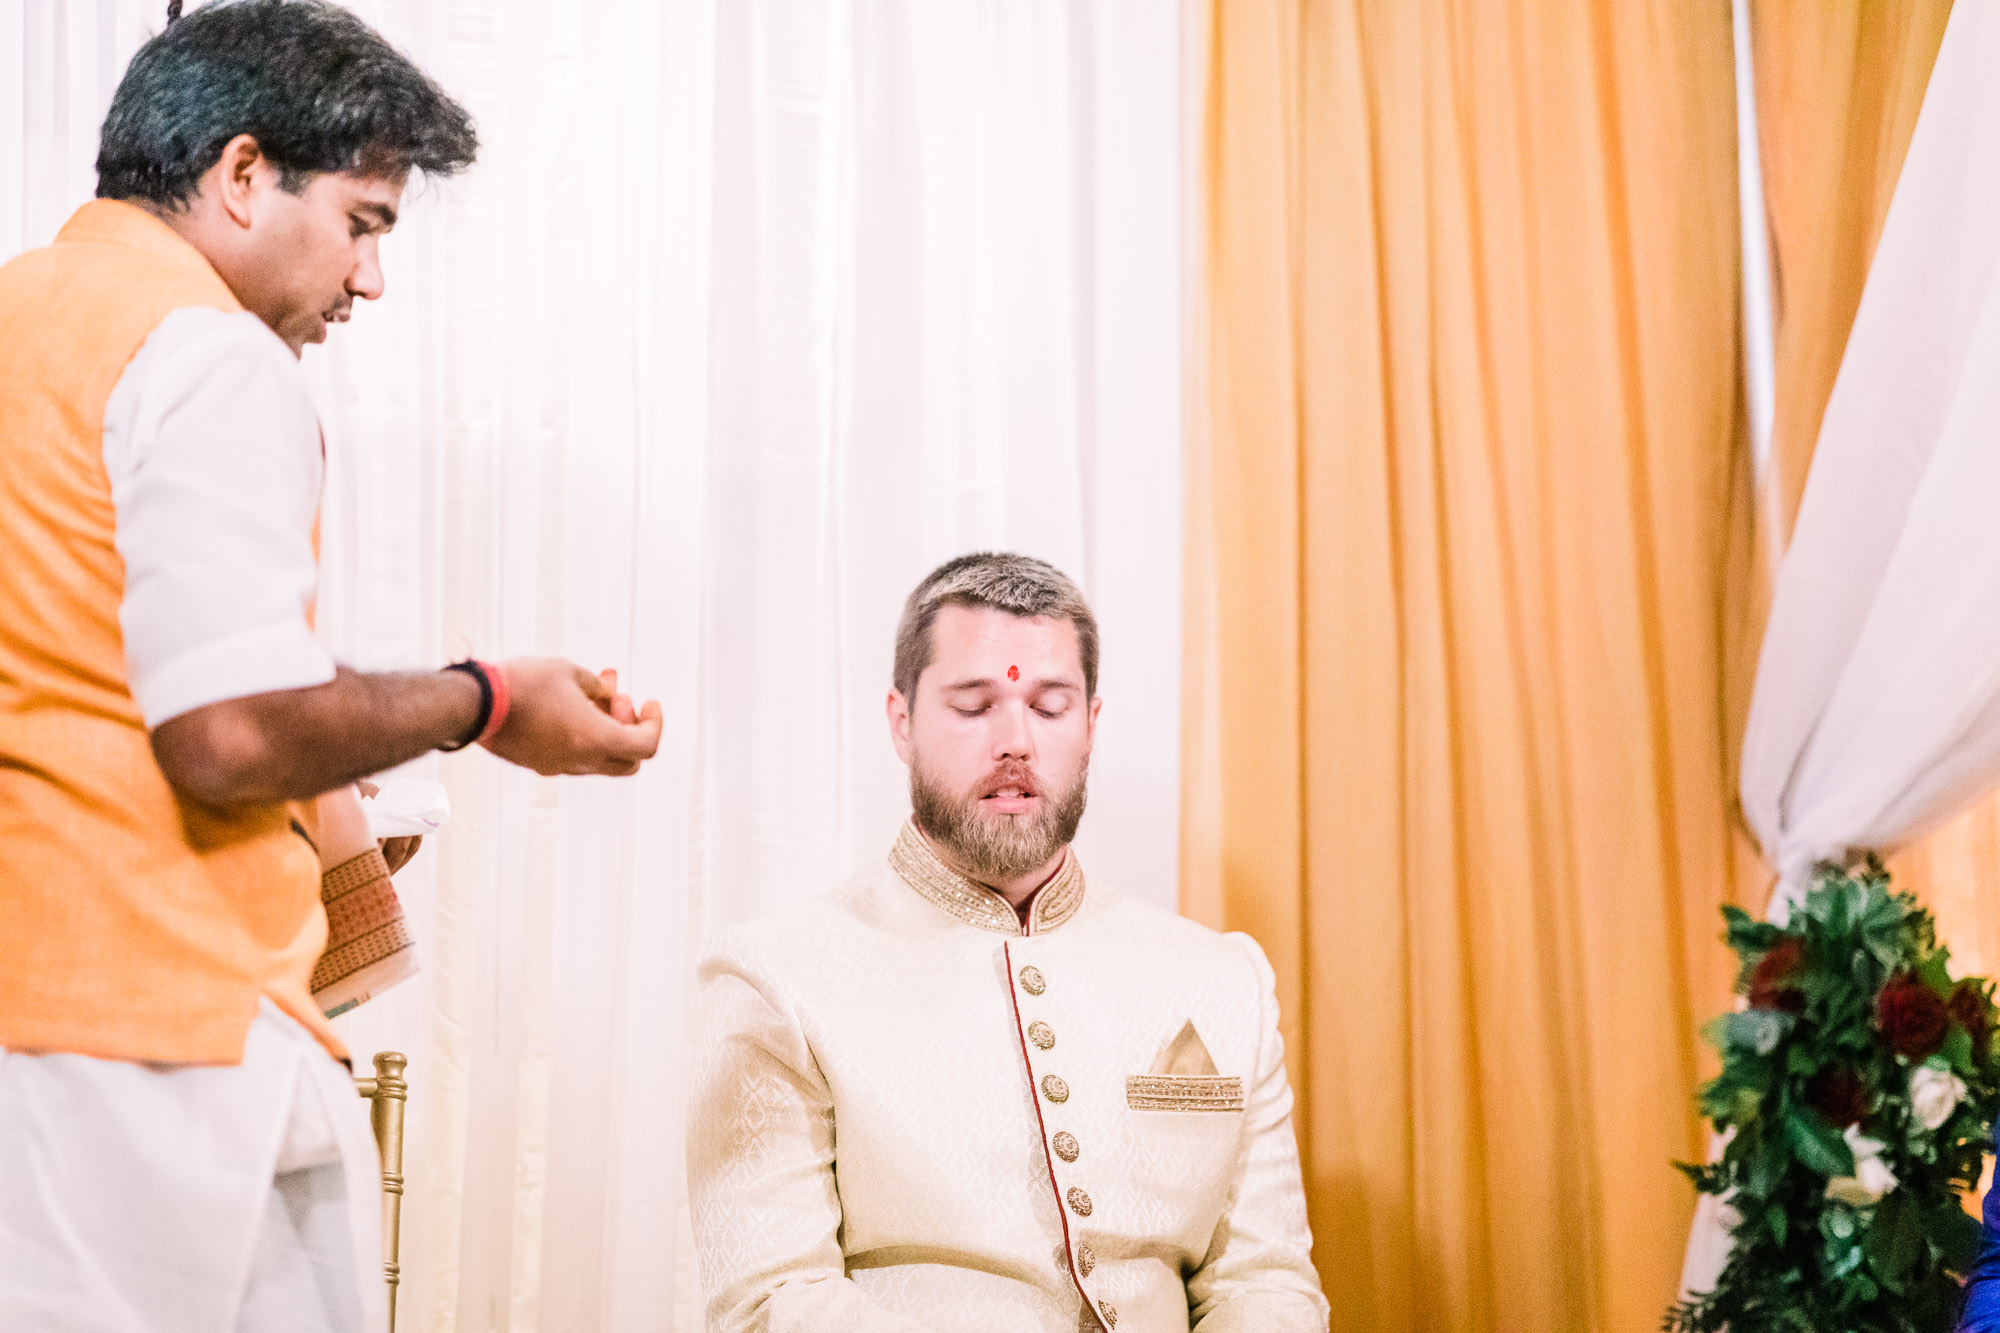 Scranton_Radisson_Hindu_Wedding-6415.jpg